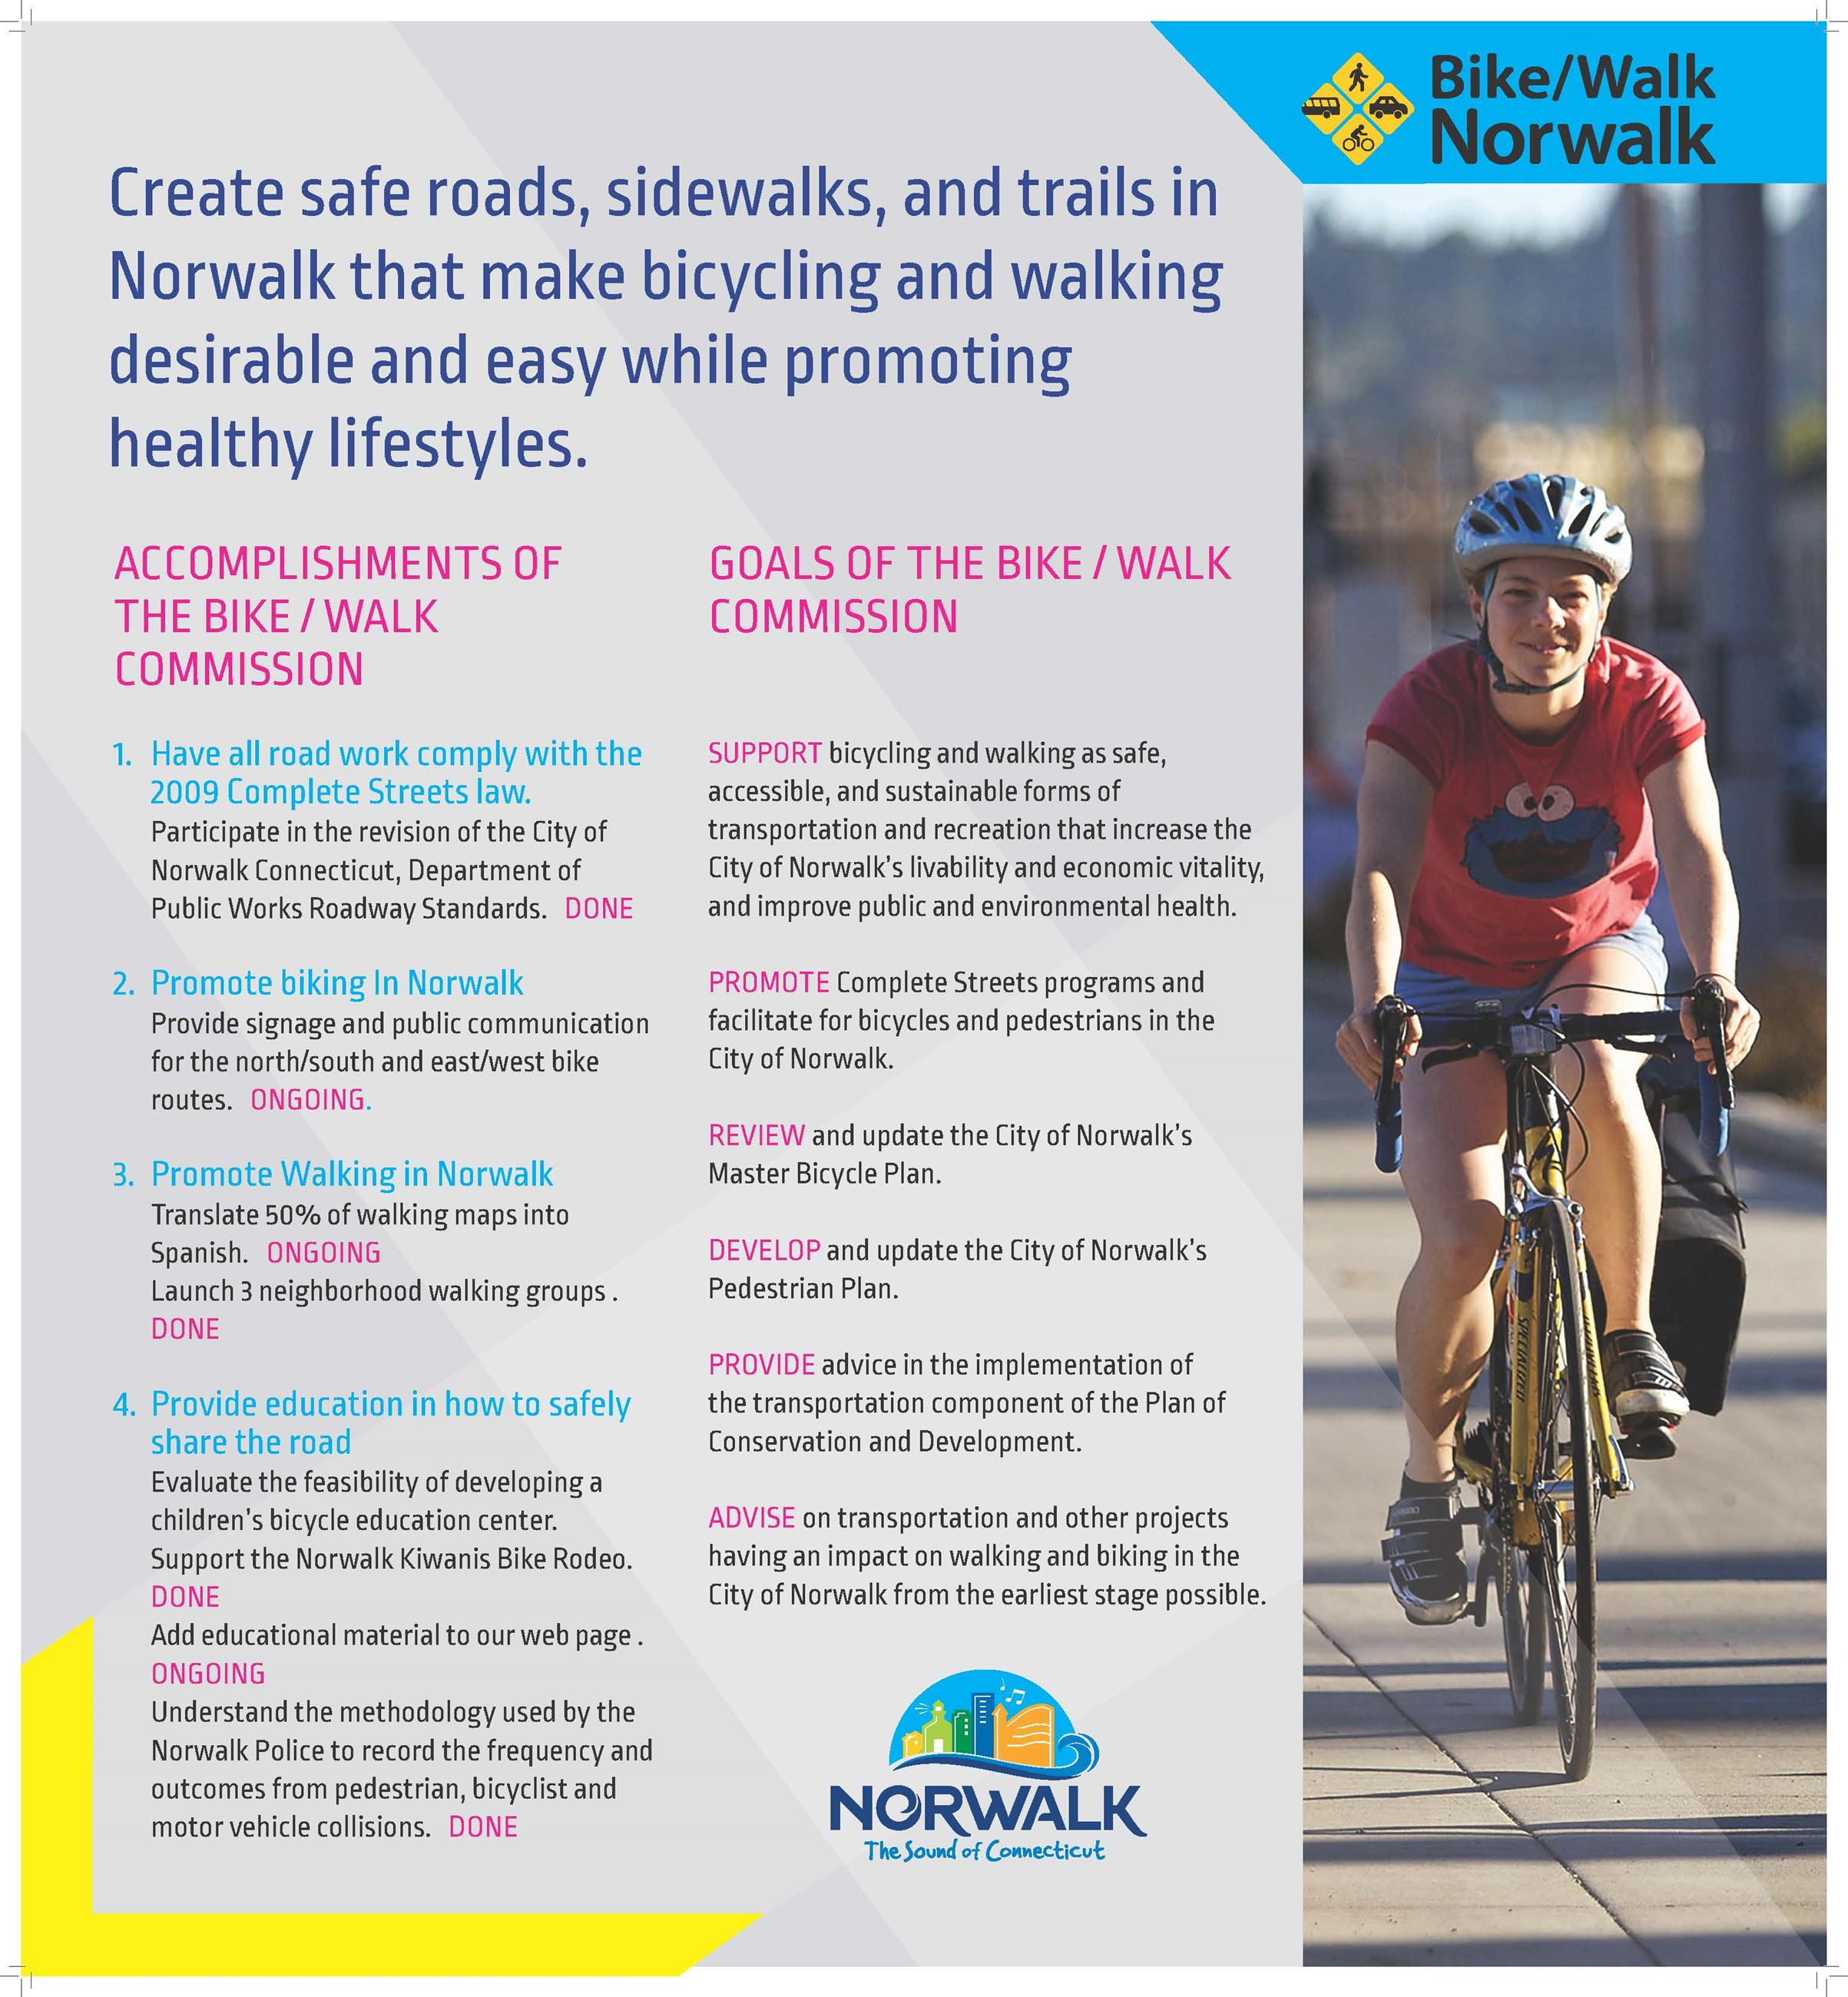 Norwalk Bike/Walk Commission - Accomplishments